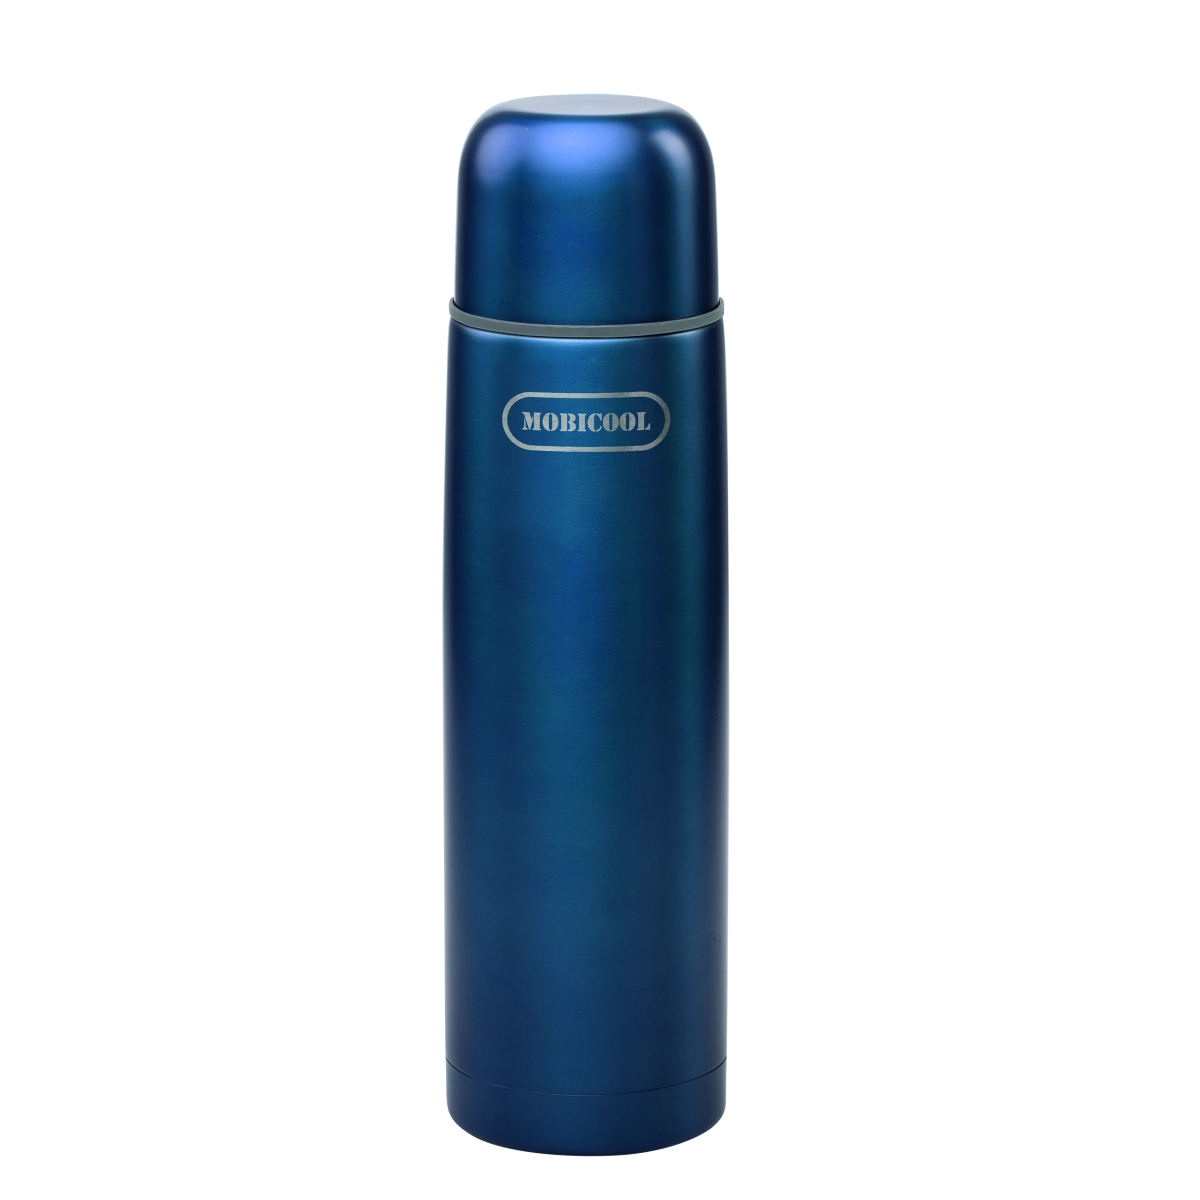 Mobicool Isolierflasche MDM100 1,0l